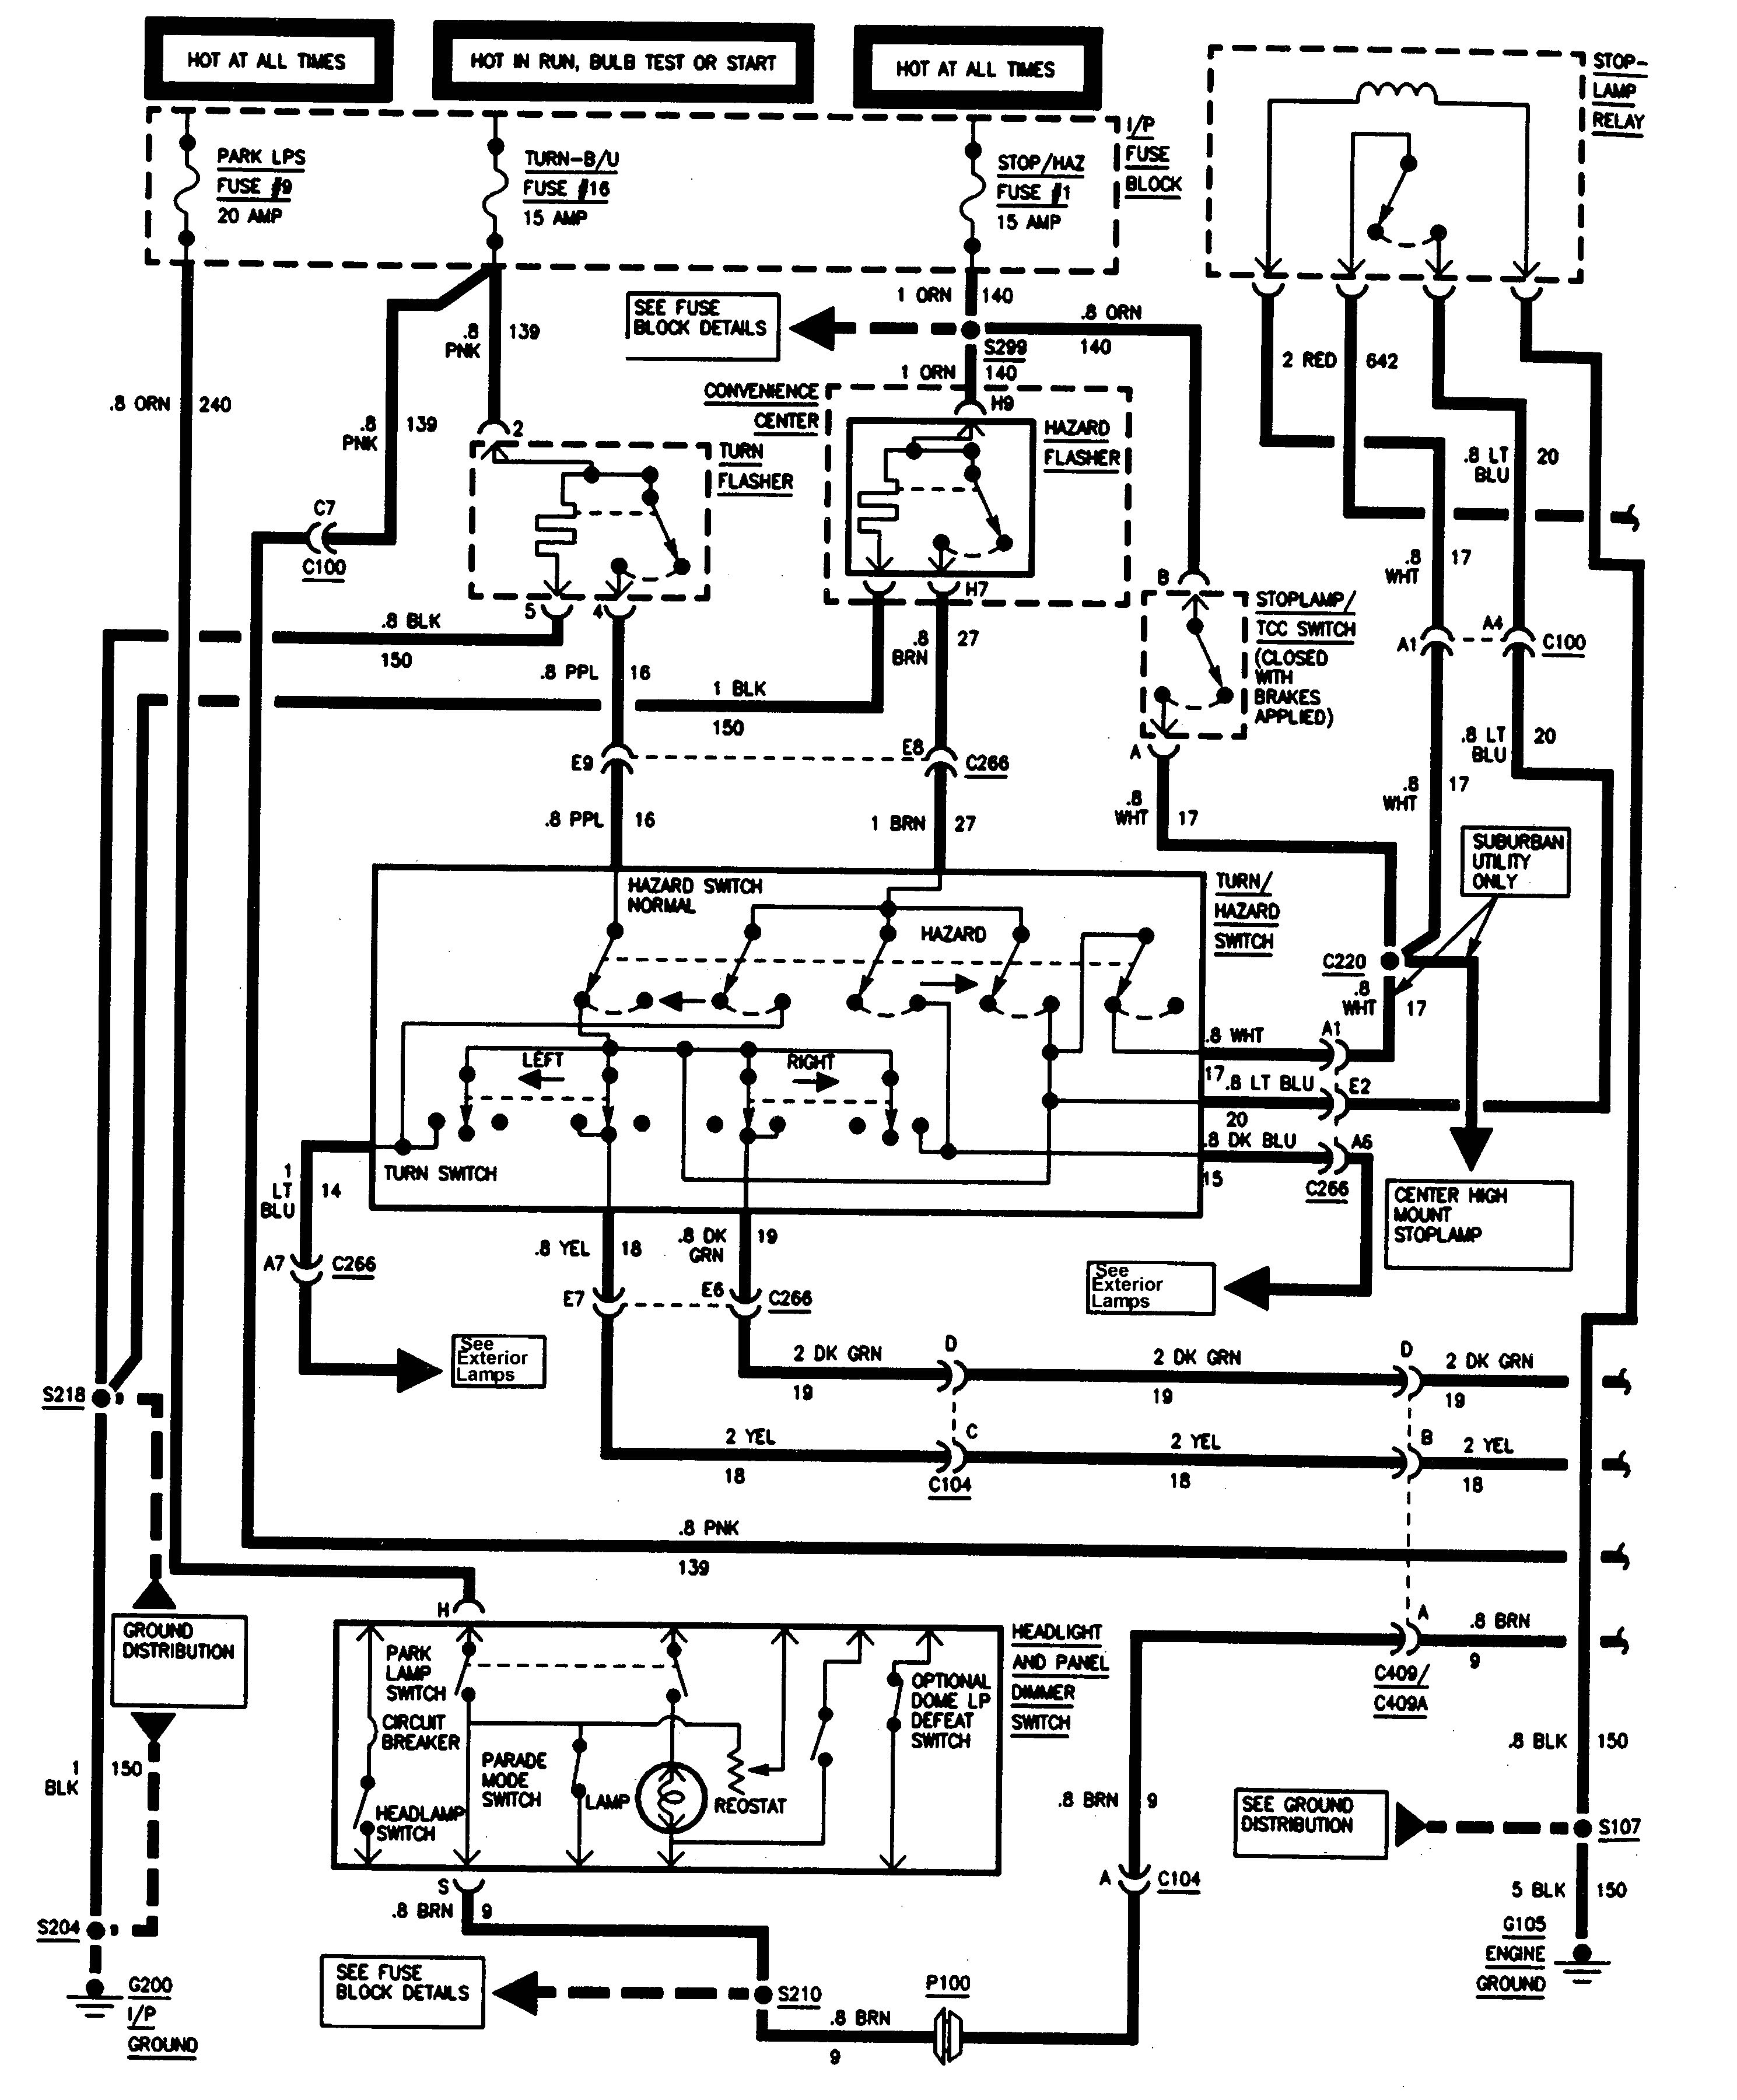 Diagram Gmc Trailer Wiring Diagram Full Version Hd